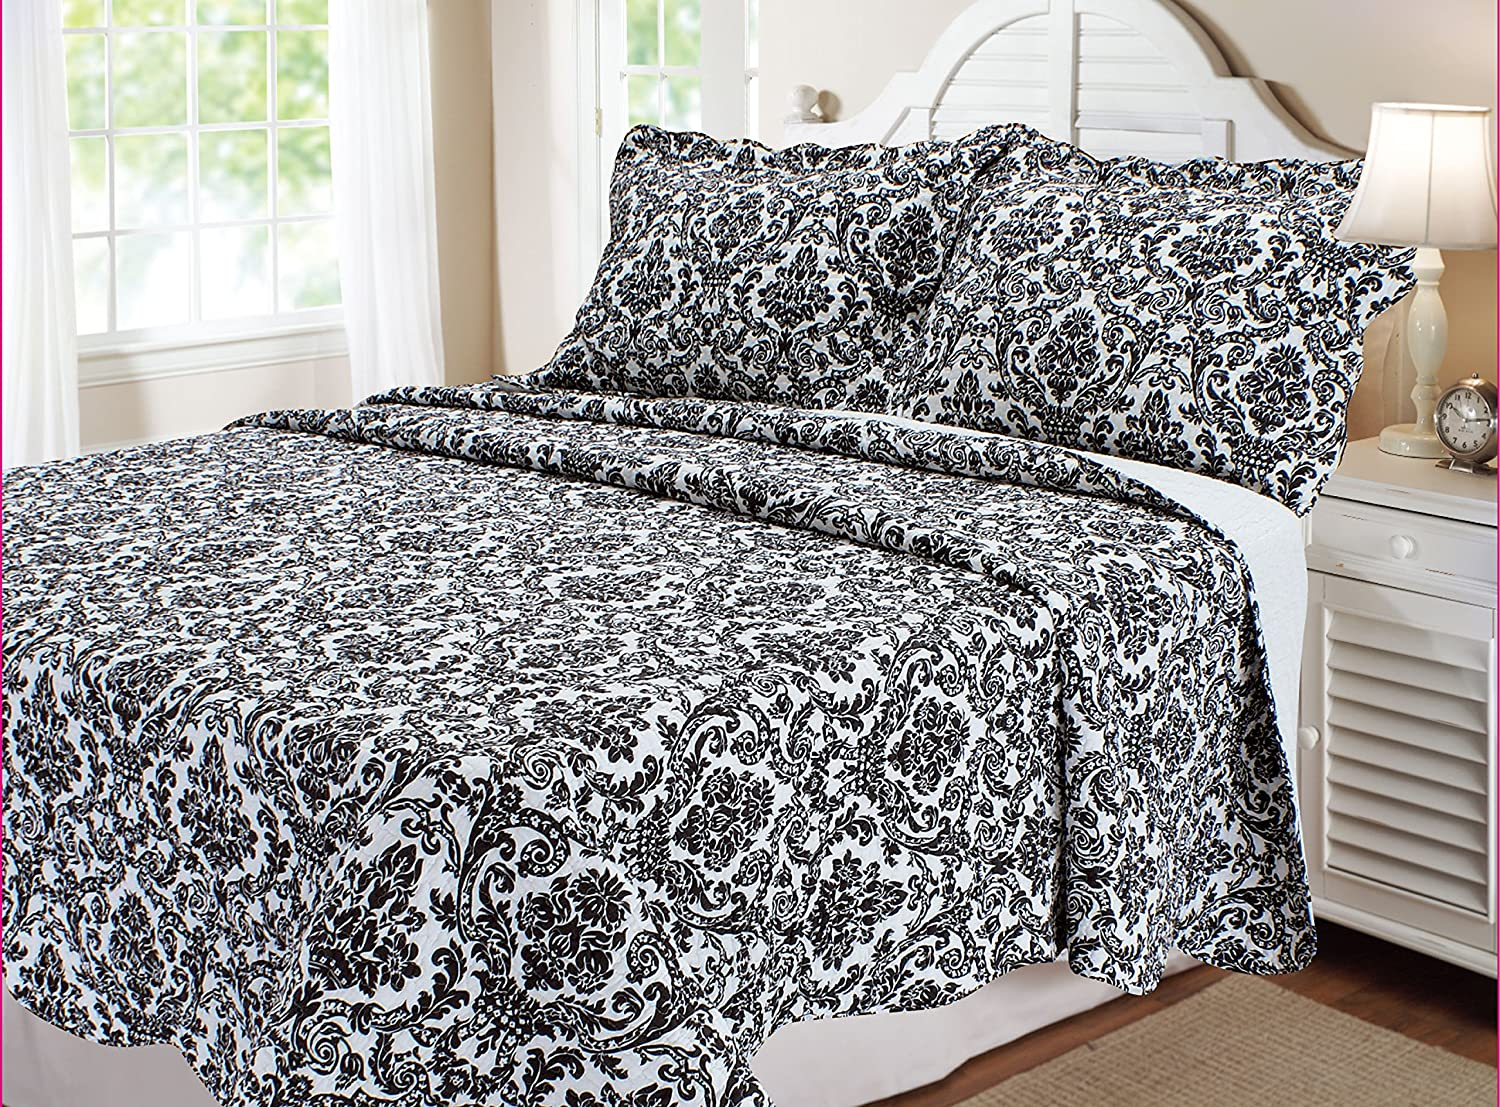 Quilt Set with Shams, King, Damask, Black and White